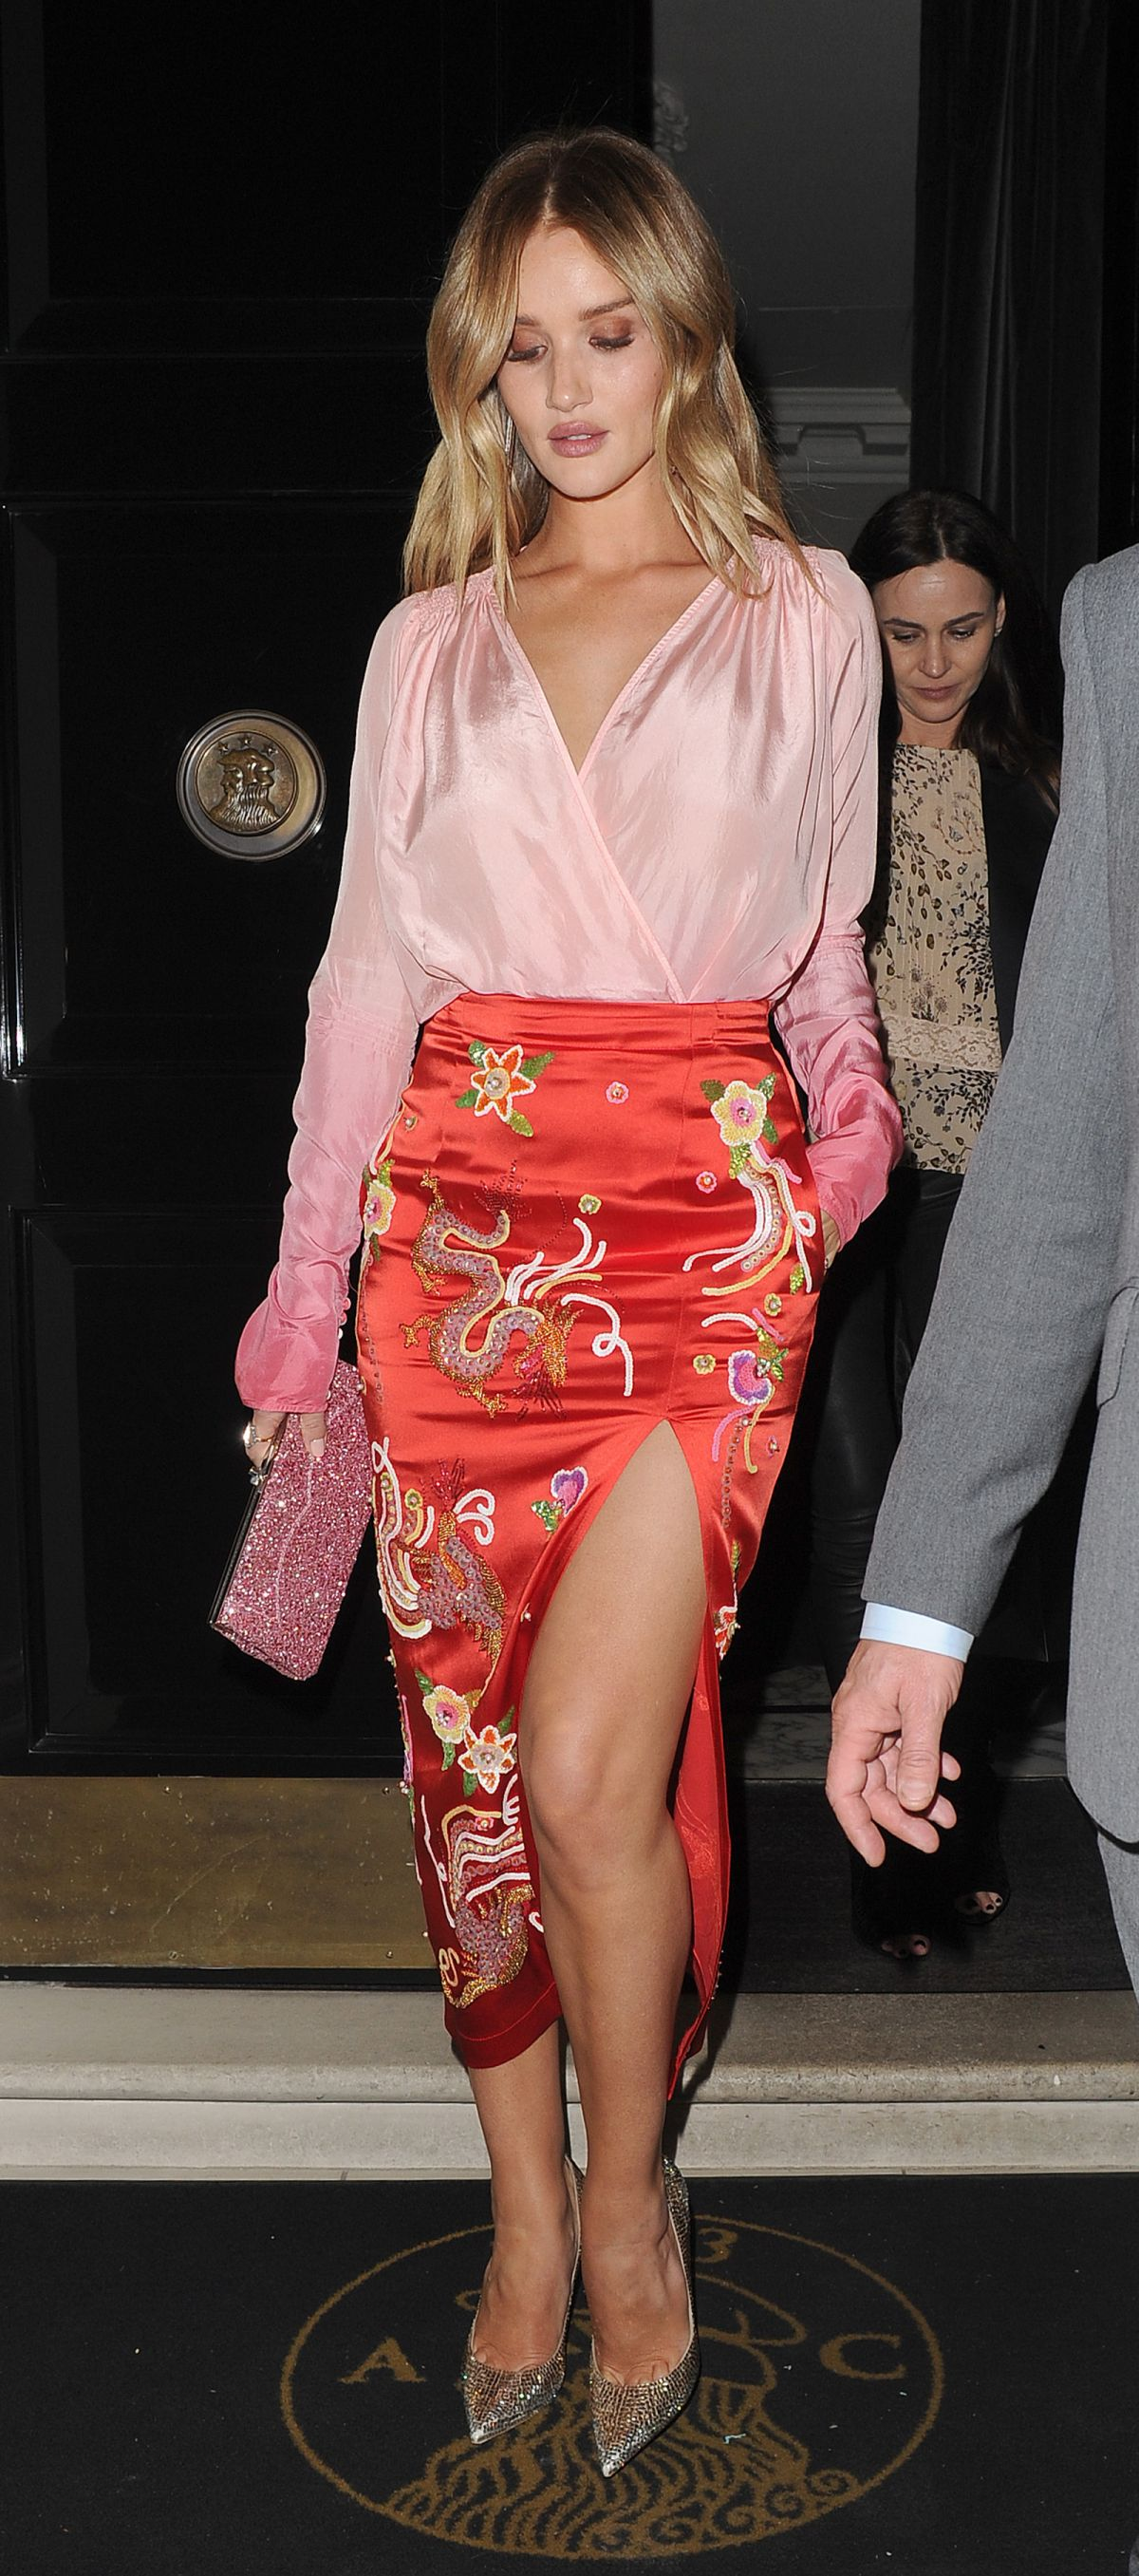 Rosie Huntington-Whiteley Leaves The Arts Club in London